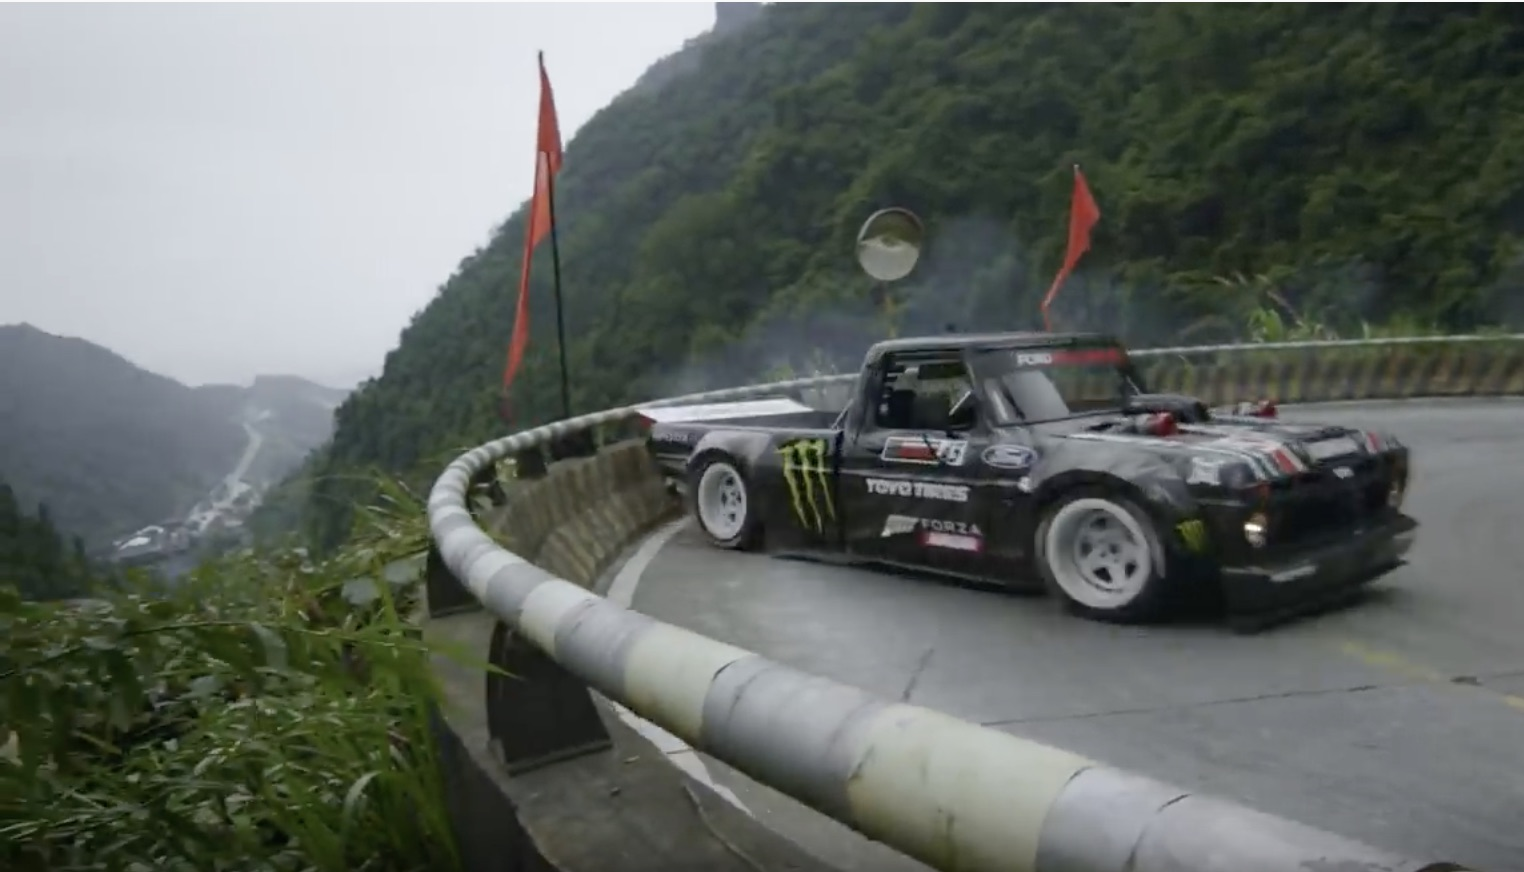 Climbkhana 2: Challenging The Seven-Mile, 99-turn Tianmen Winding Mountain Road In China